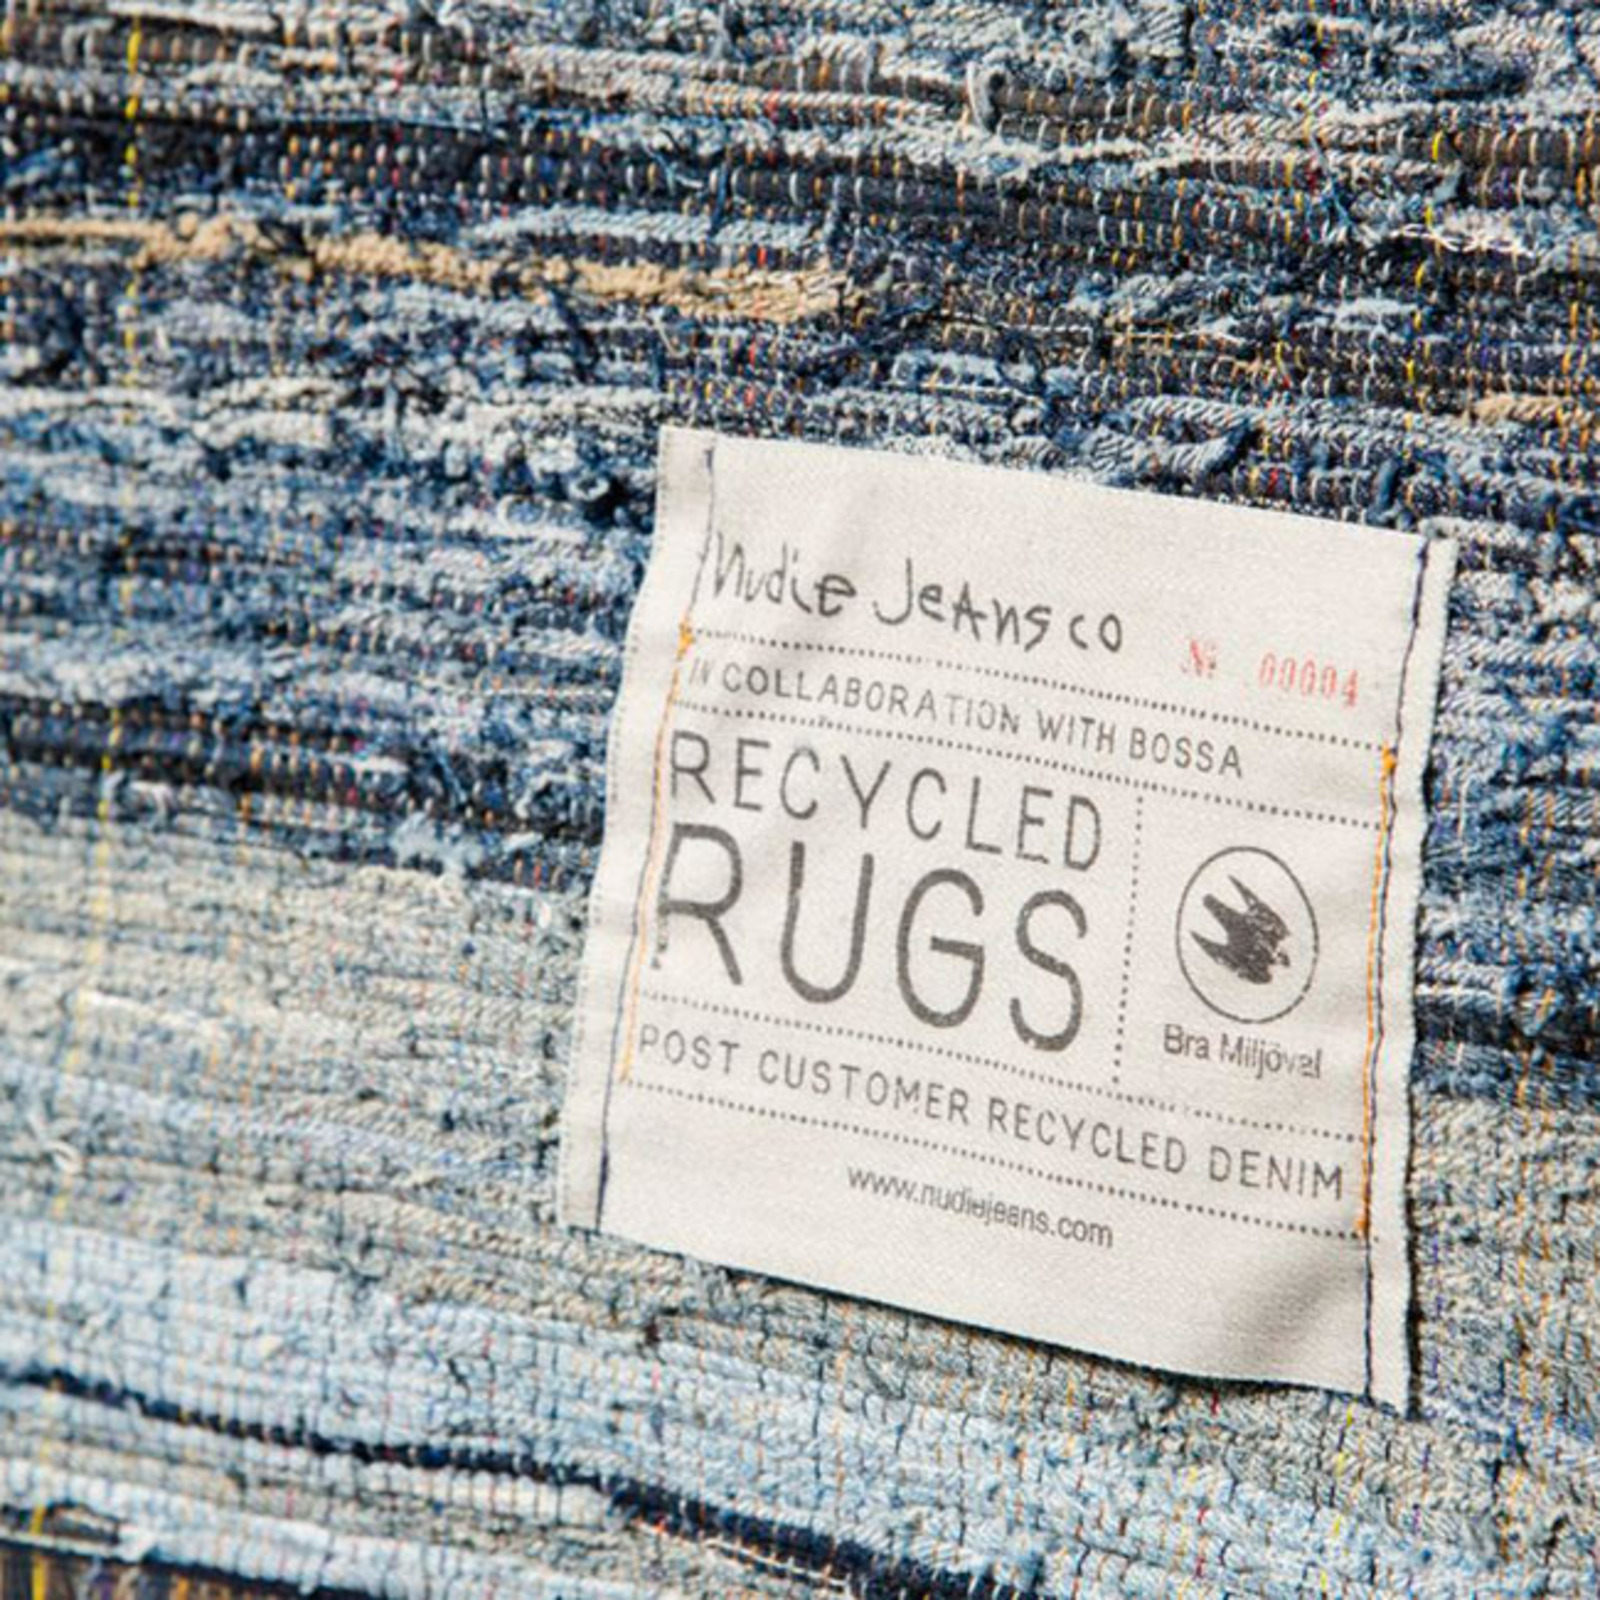 Nu Jeans Recycled Denim Rugs Cool Hunting